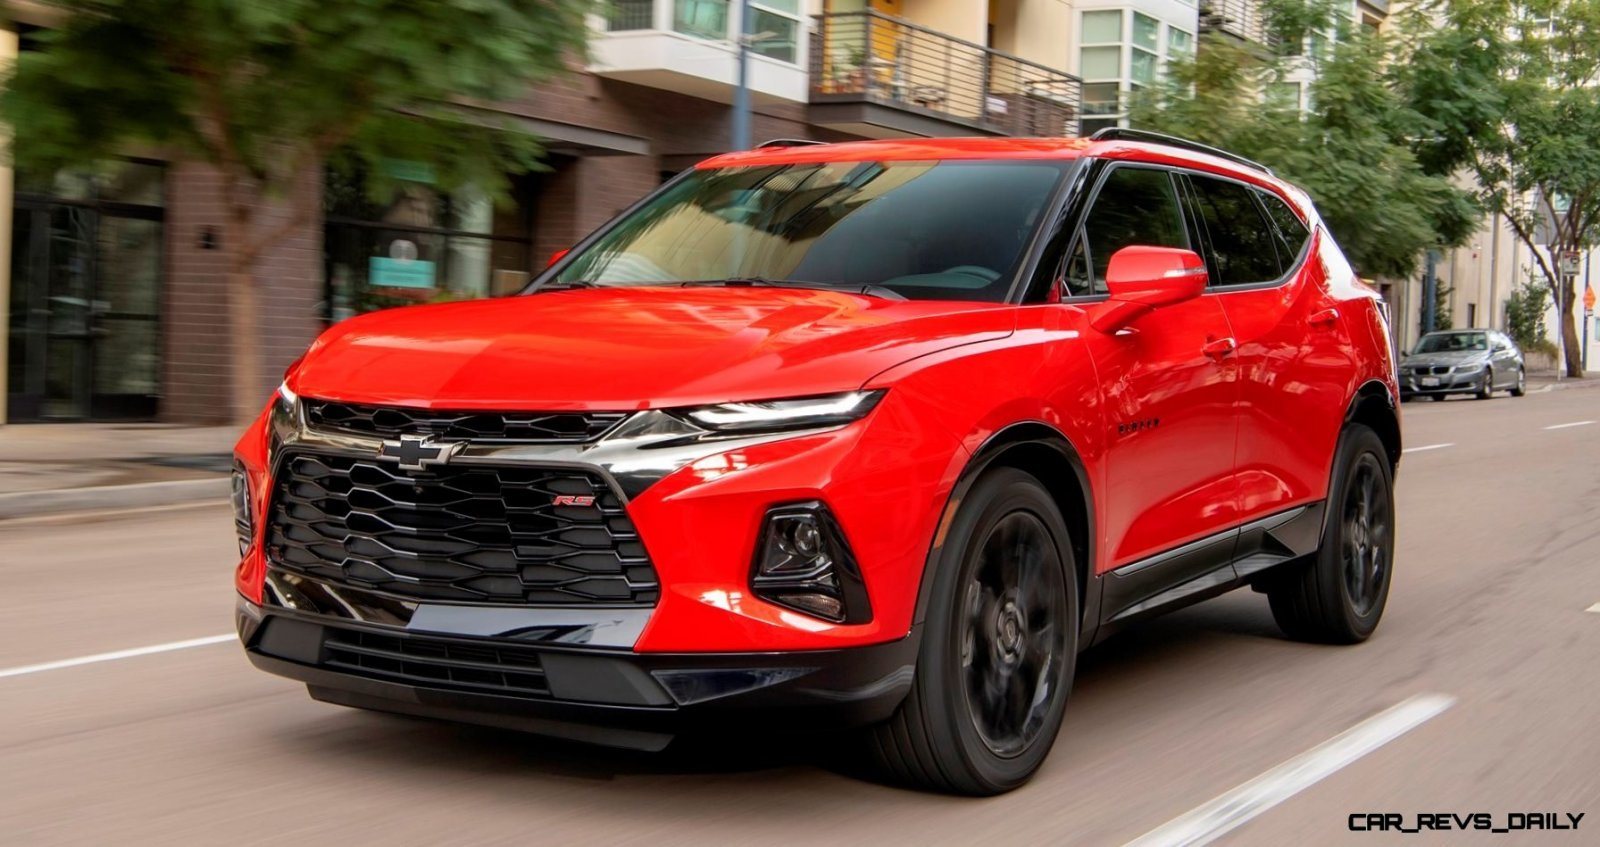 2019 Chevrolet Blazer Rs First Drive Gallery 187 Car